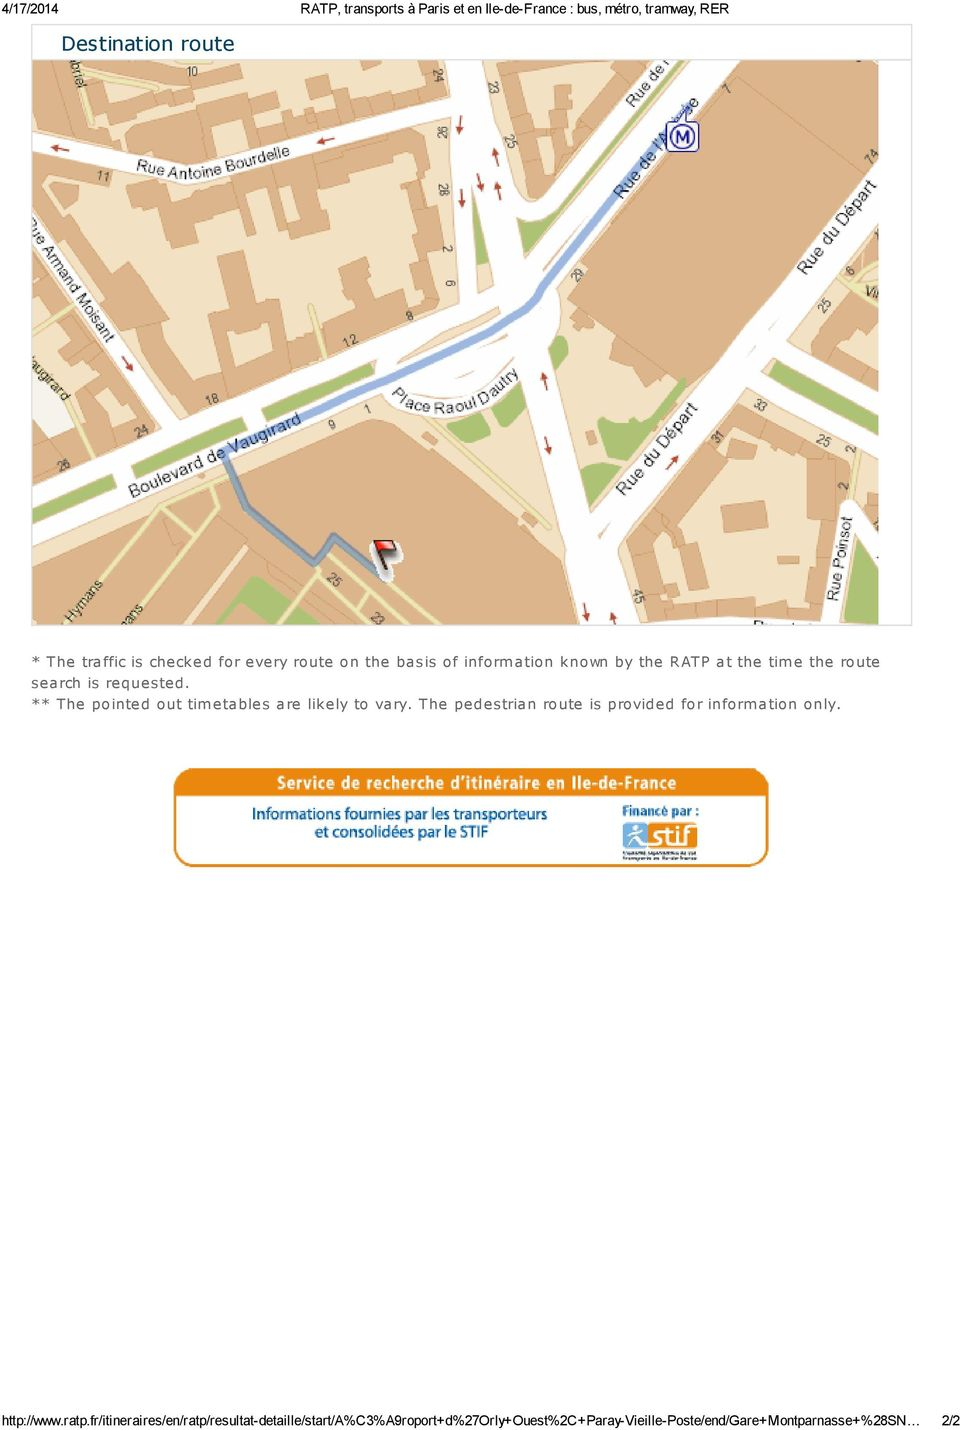 ** The pointed out tim etables are likely to vary. The pedestrian route is provided for inform ation only. http://www.